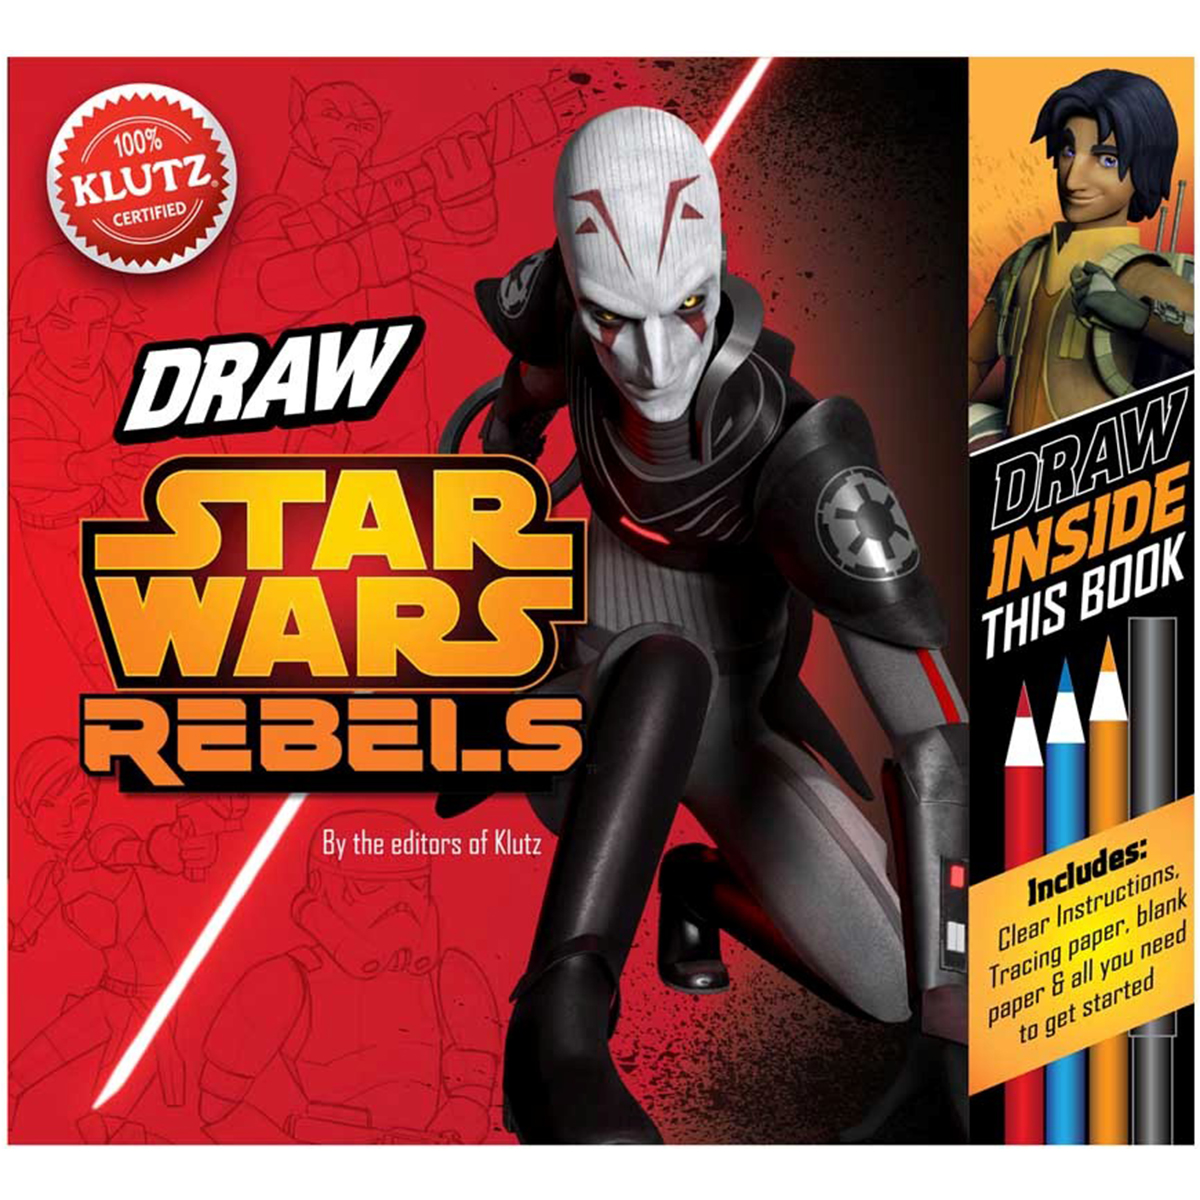 Star Wars Rebels Book Kit-